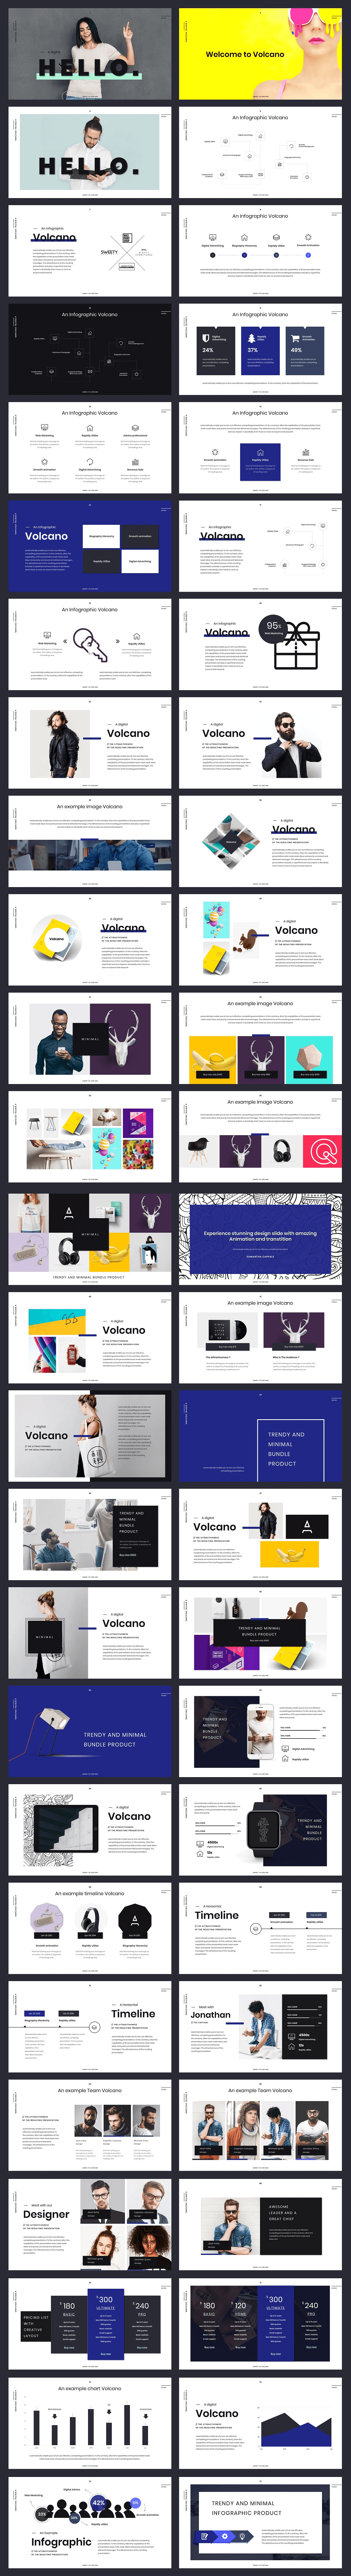 Massive 23000 powerpoint presentation slides bundle bypeople volcano powerpoint template back to top toneelgroepblik Image collections